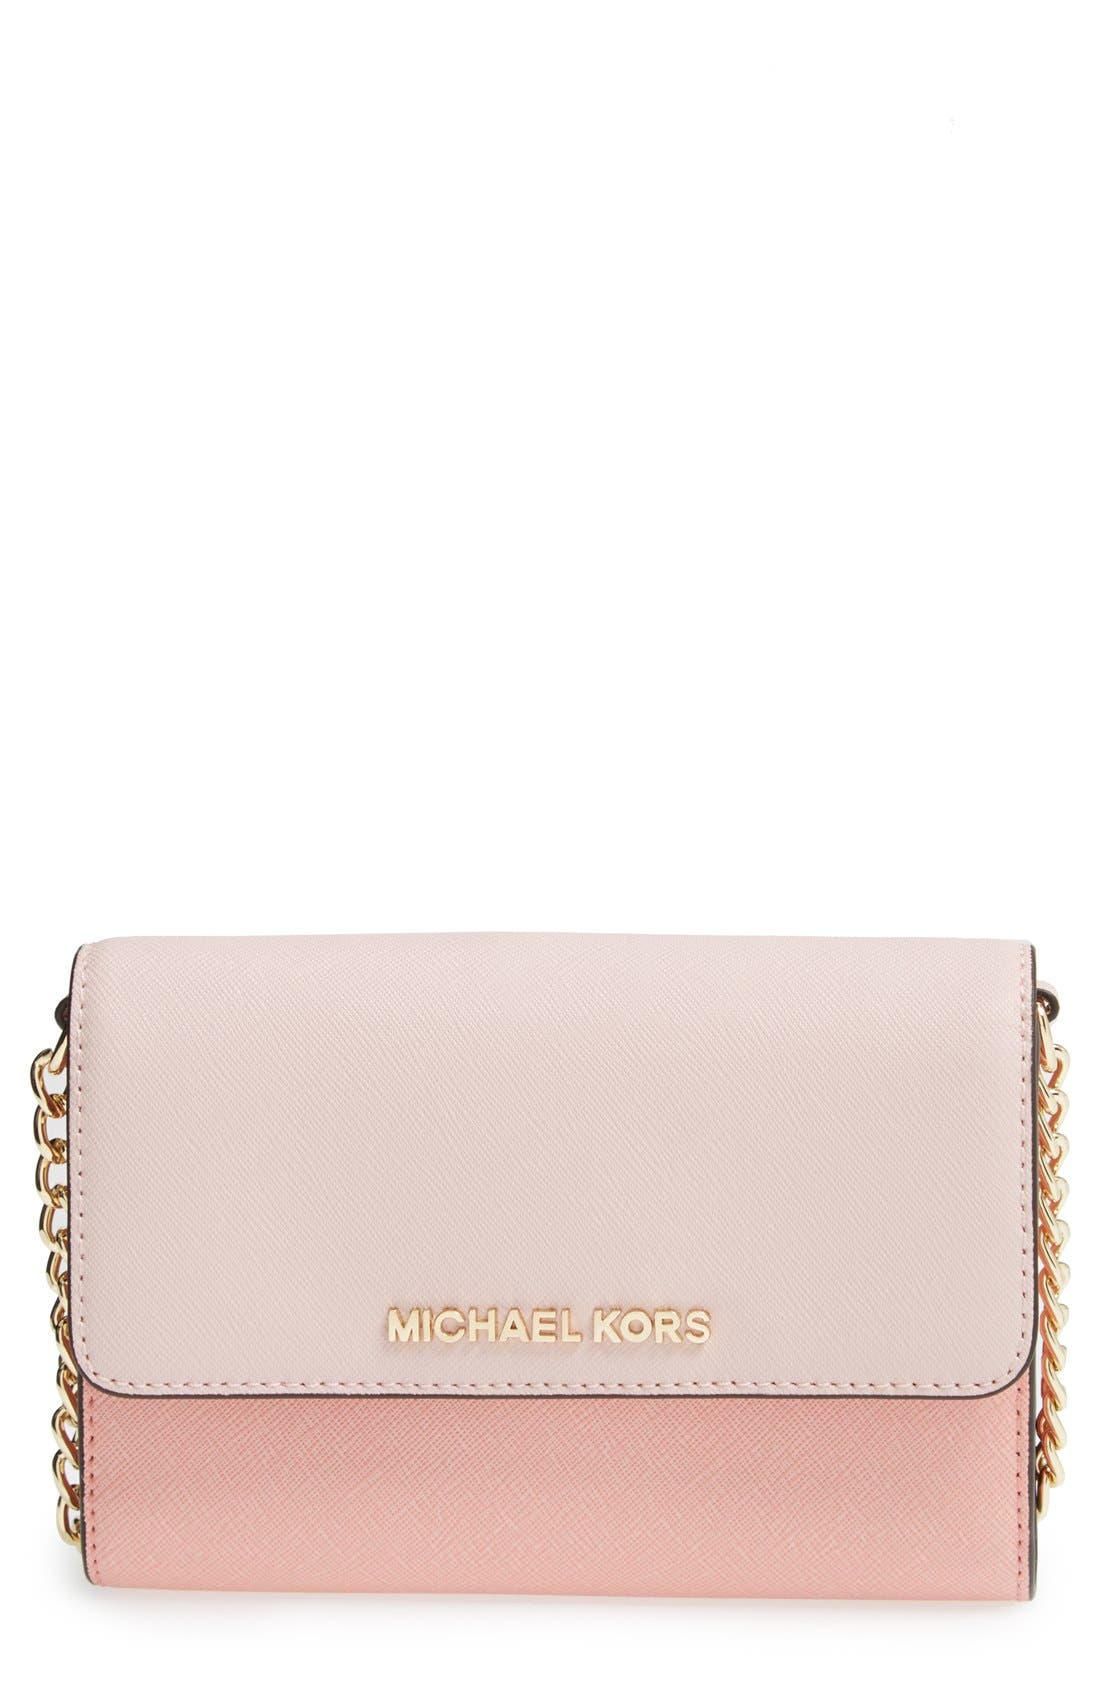 Alternate Image 1 Selected - MICHAEL Michael Kors 'Jet Set Travel' Saffiano Leather Crossbody Bag